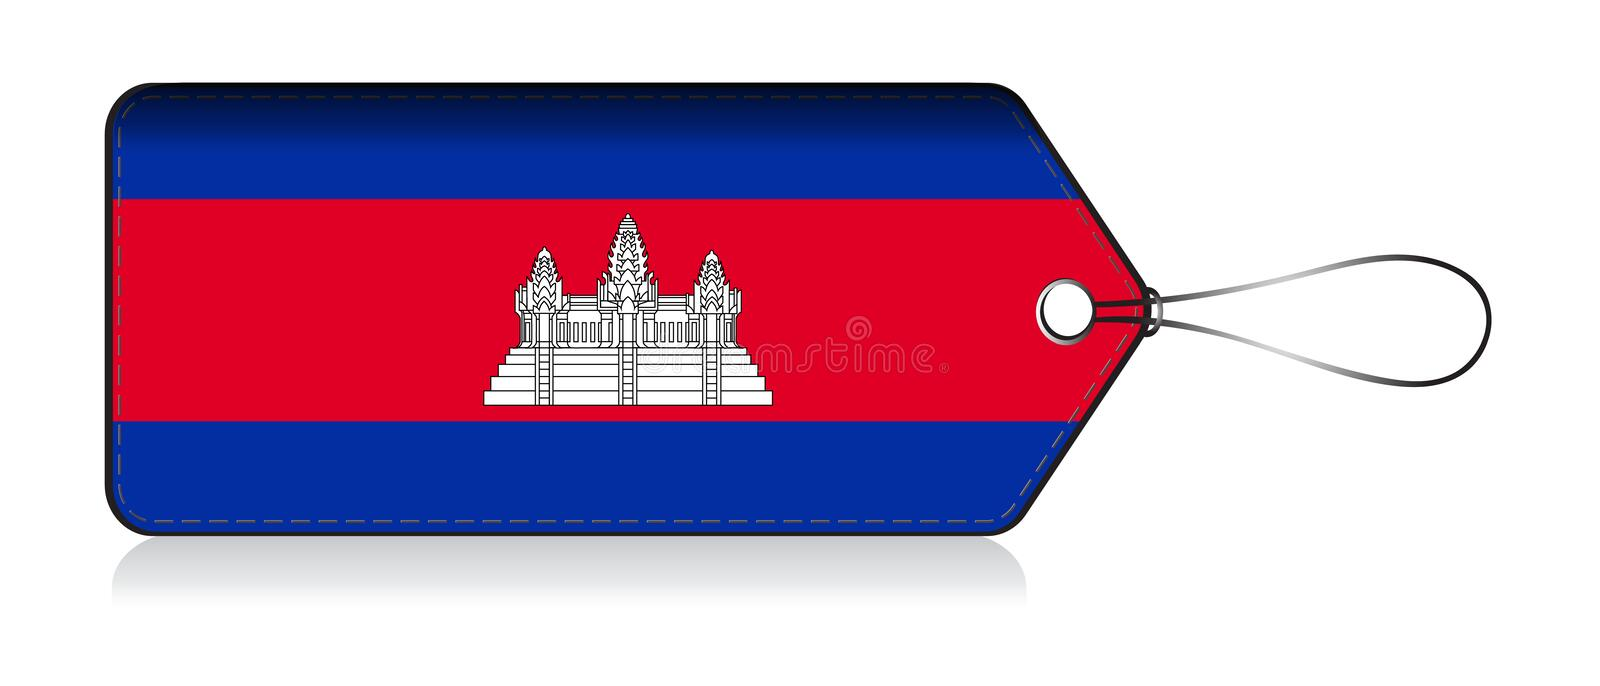 Cambodian emoji flag, Label of  Product made in Cambodia royalty free illustration